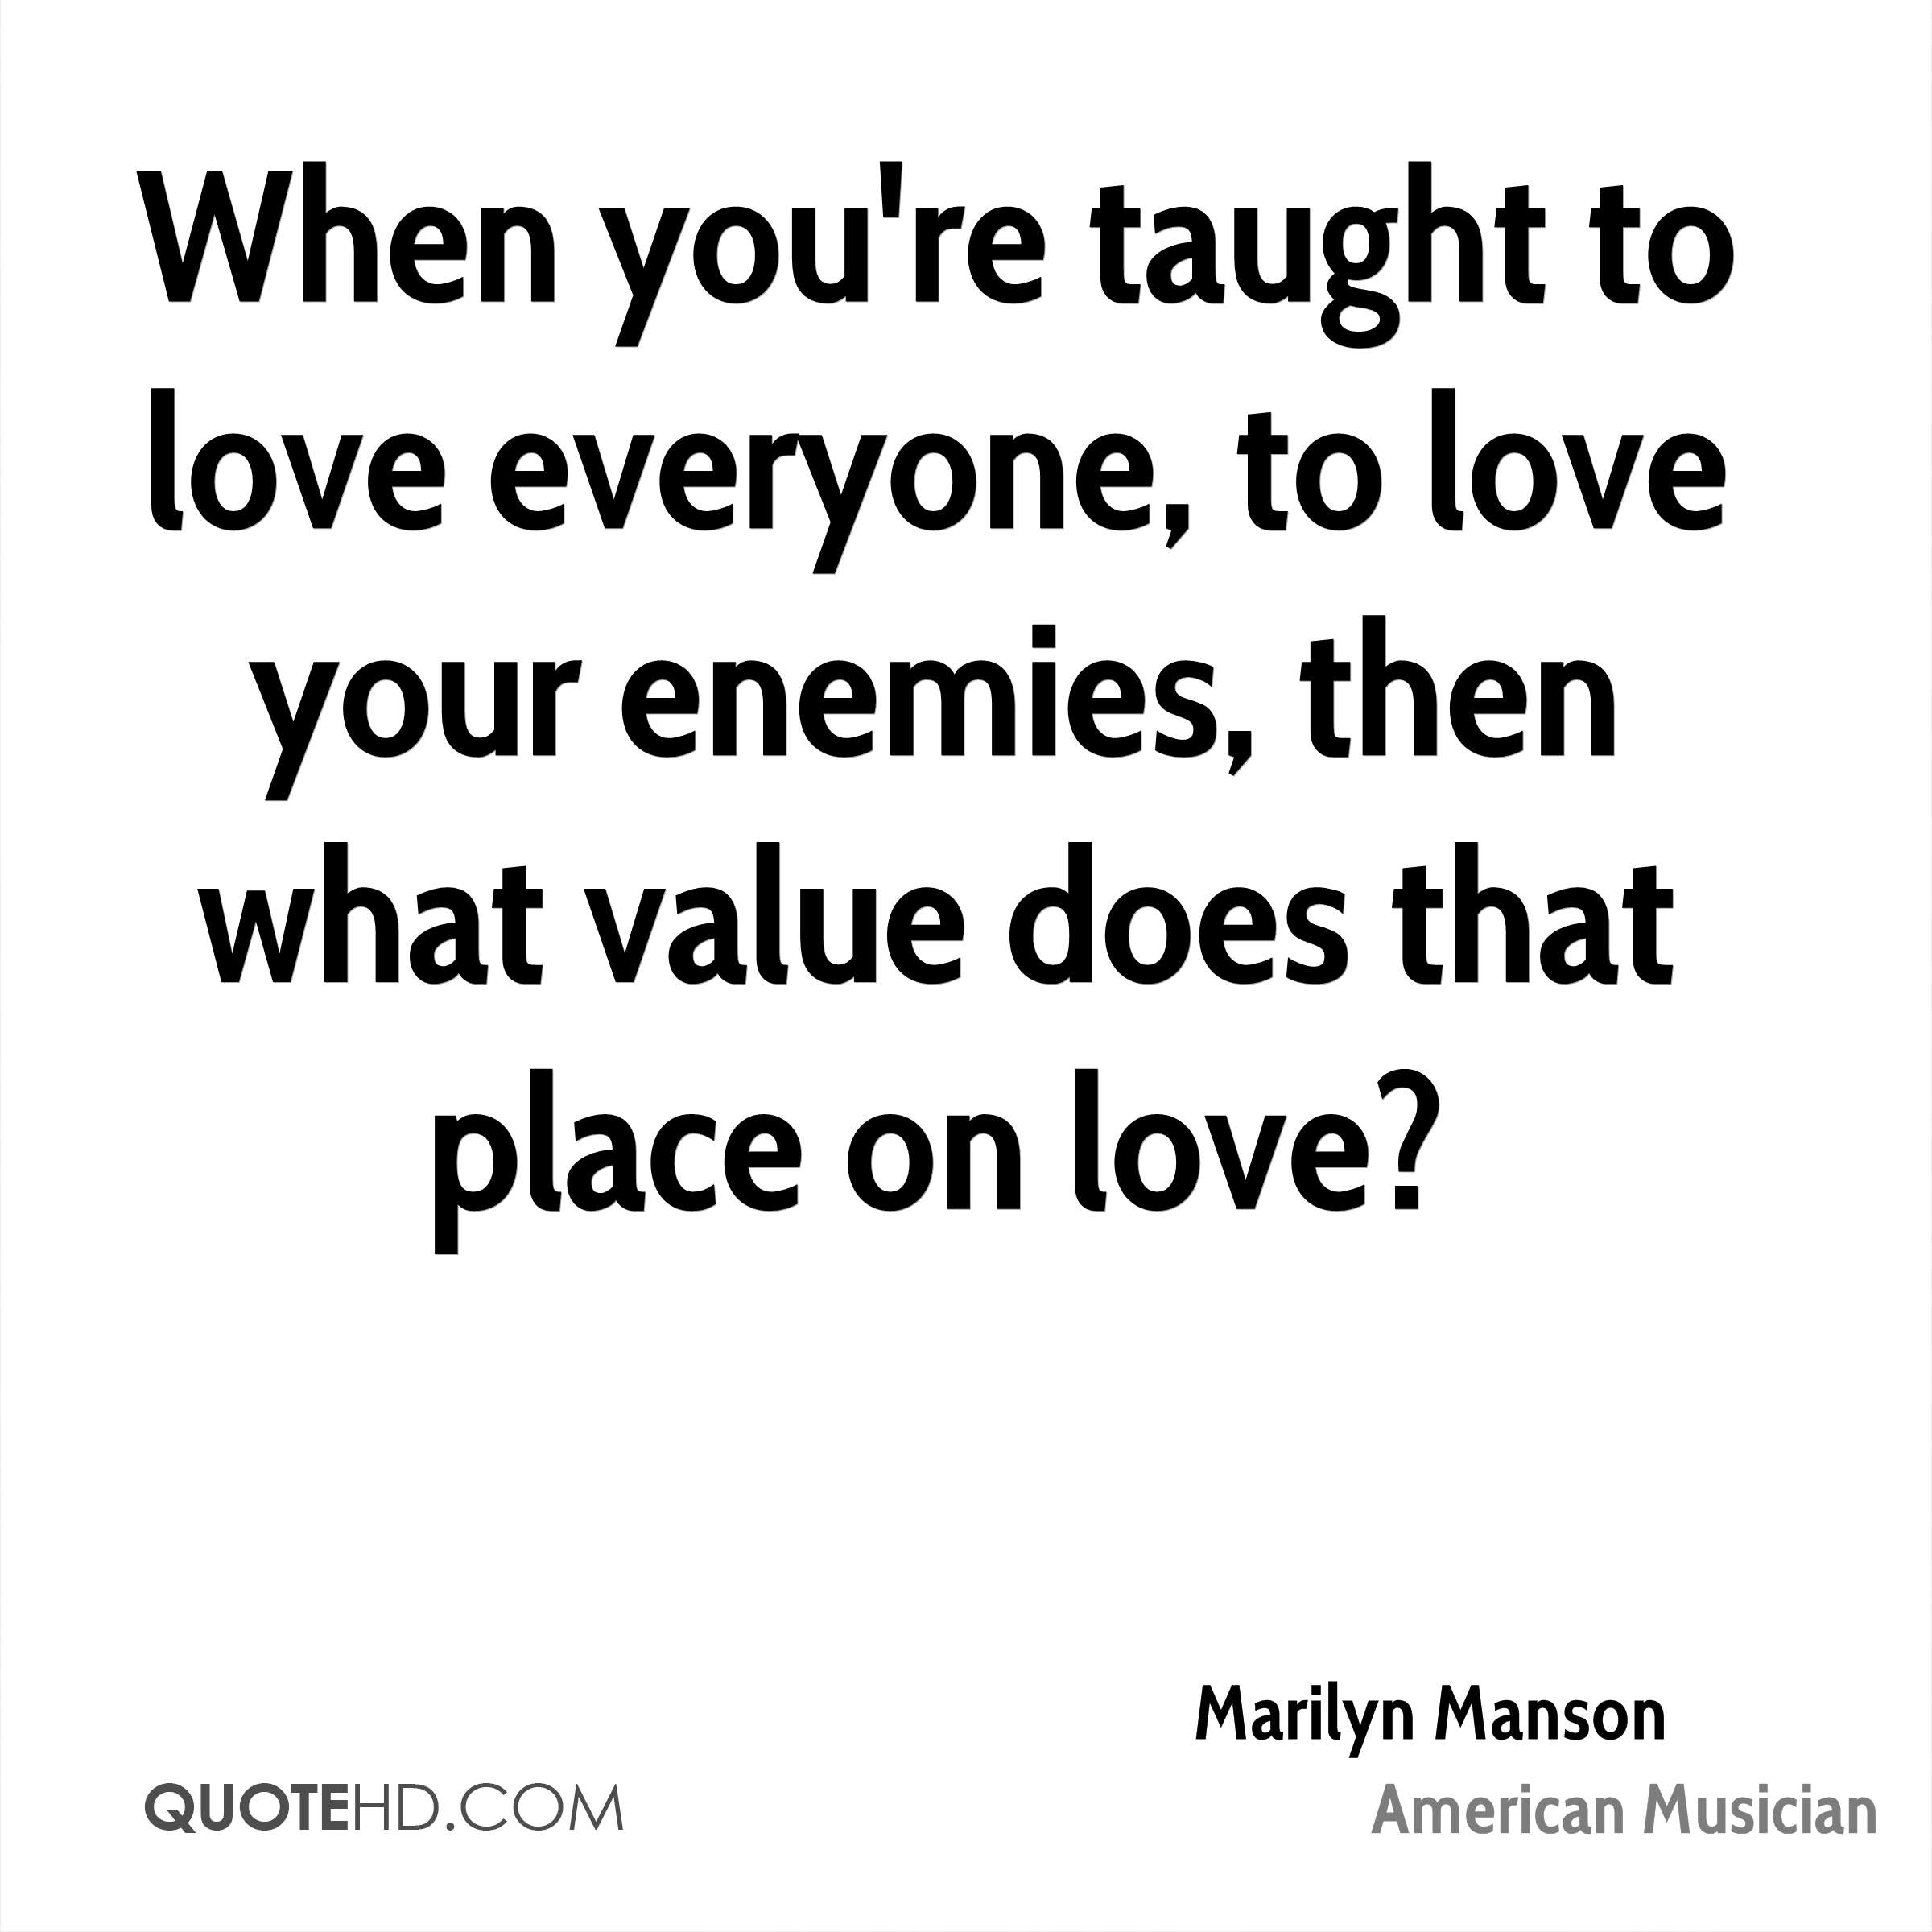 marilyn manson love quotes quotehd